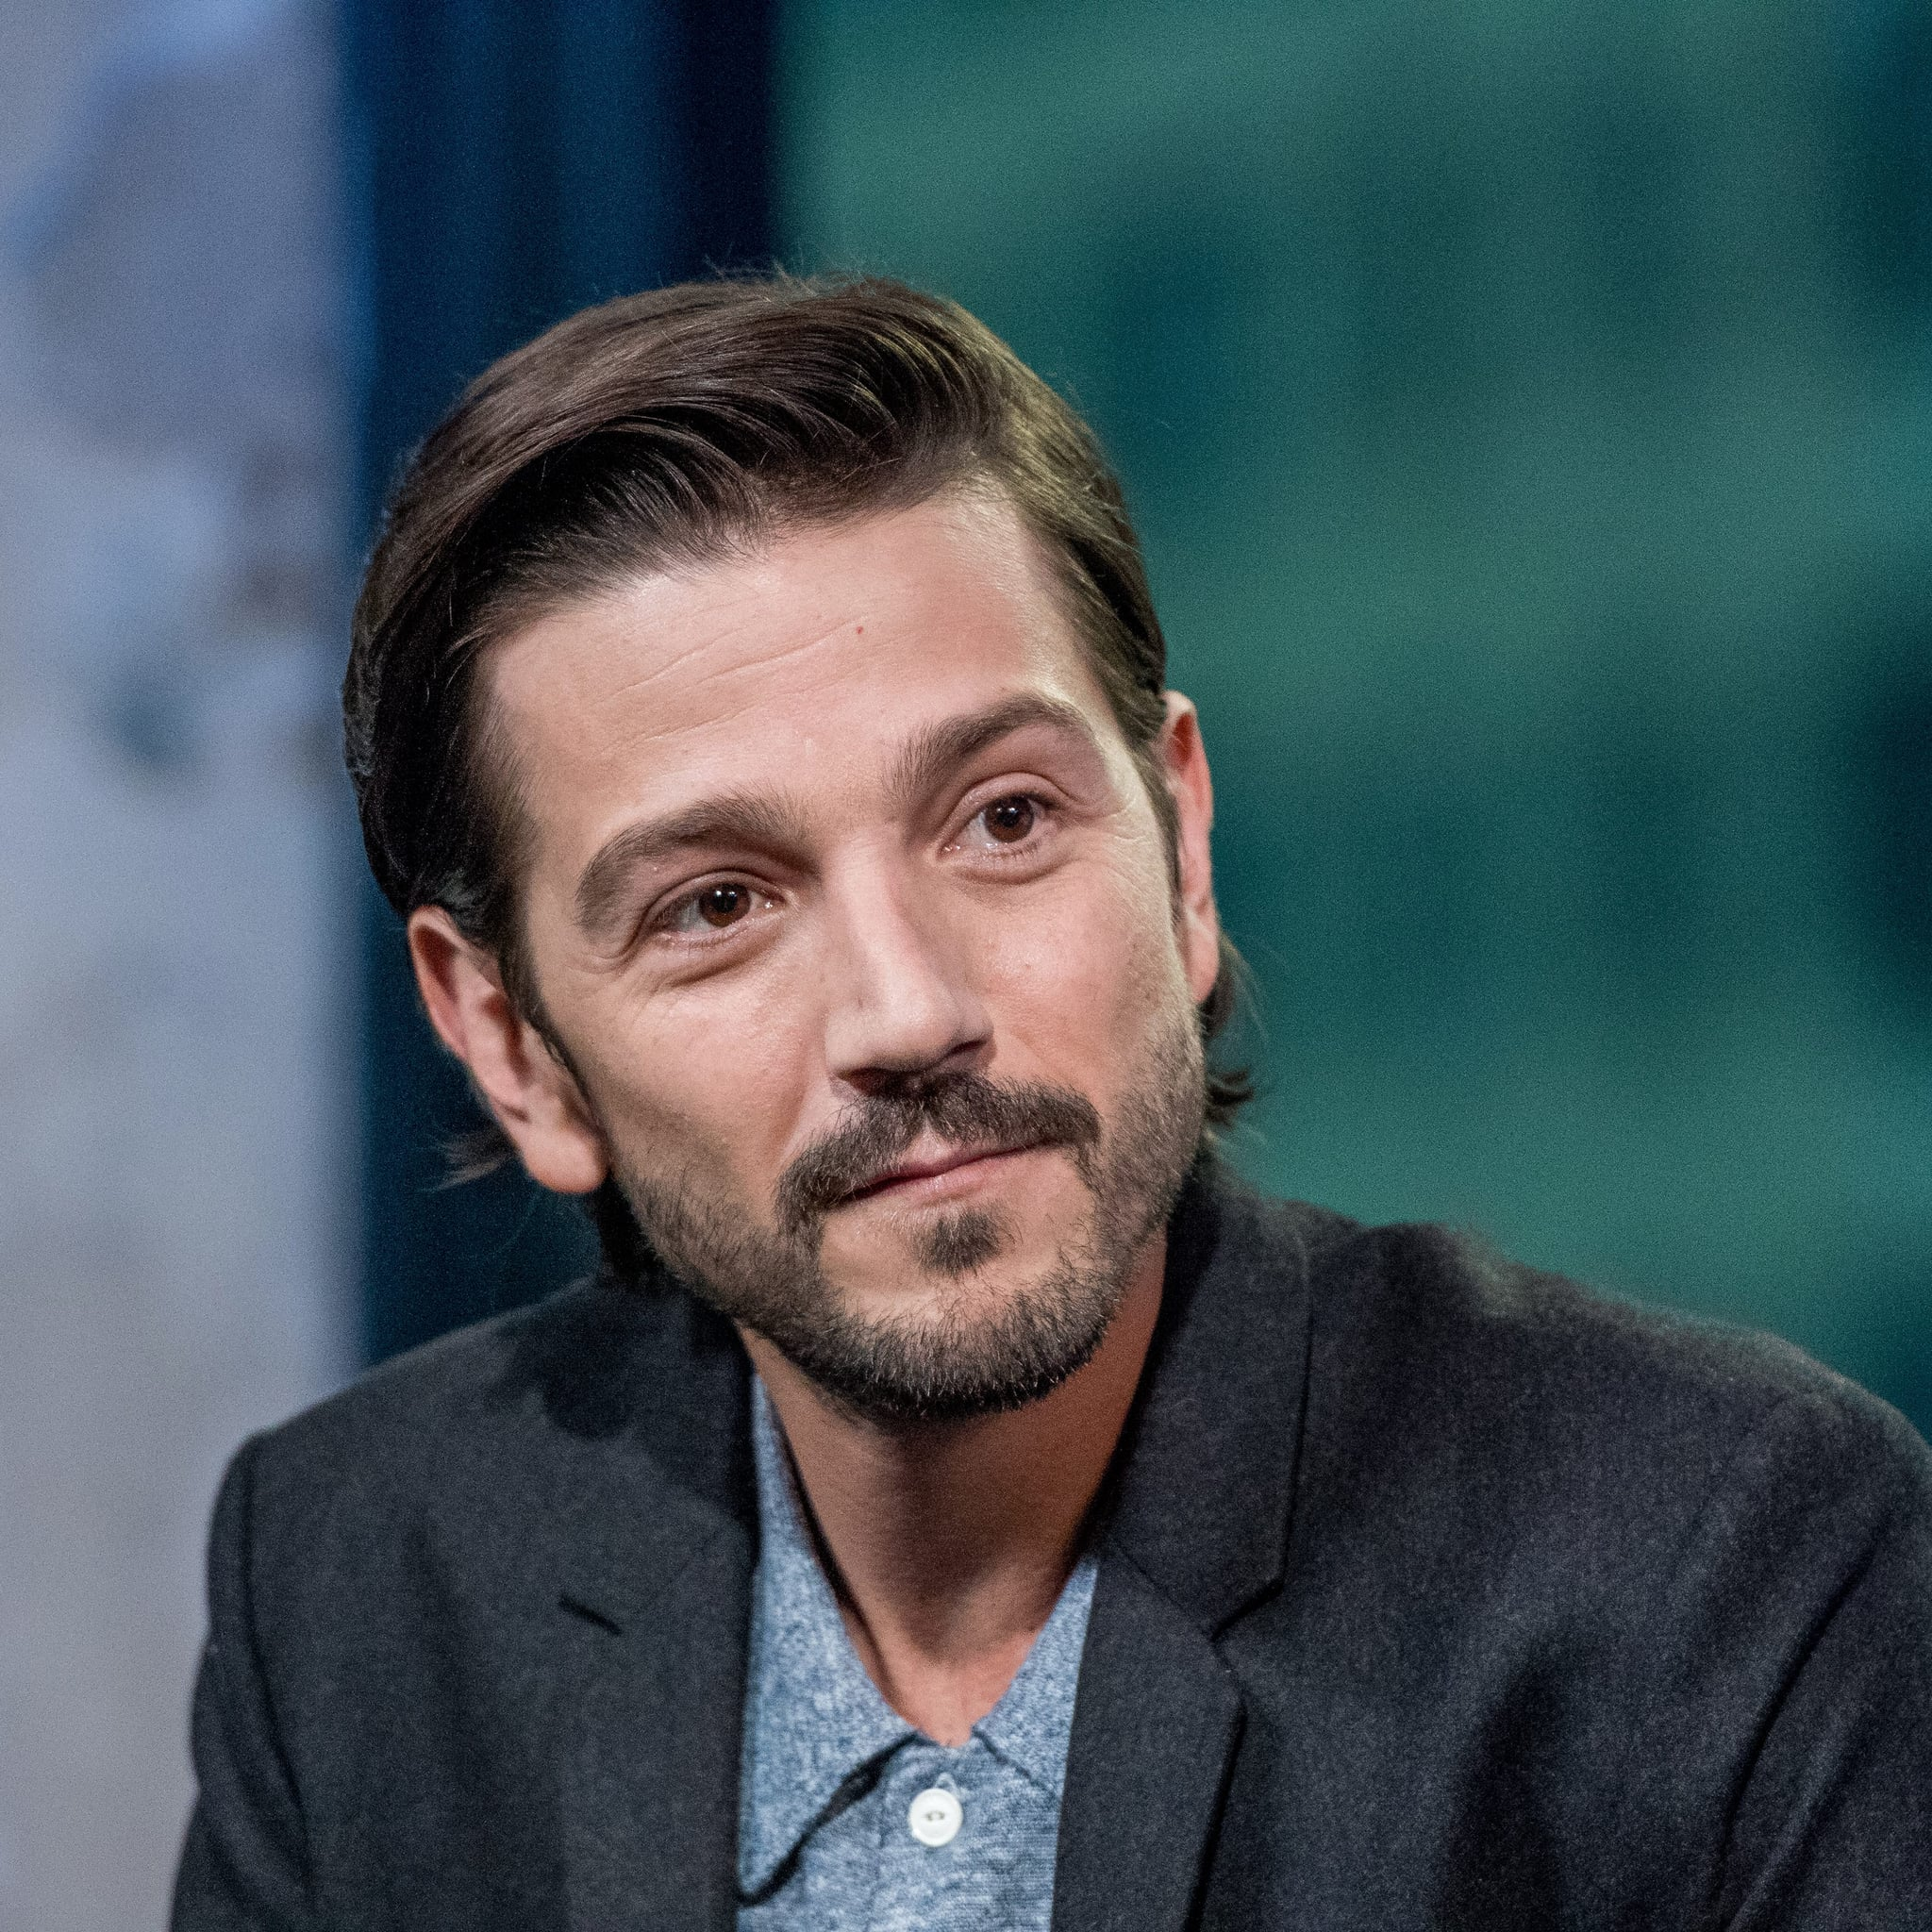 diego luna conandiego luna instagram, diego luna tumblr, diego luna rogue one, diego luna twitter, diego luna felicity jones, diego luna height, diego luna star wars, diego luna gif, diego luna daily, diego luna suki waterhouse, diego luna vk, diego luna wife, diego luna dirty dancing, diego luna interview, diego luna 2016, diego luna wiki, diego luna photoshoot, diego luna wikipedia, diego luna conan, diego luna book of life